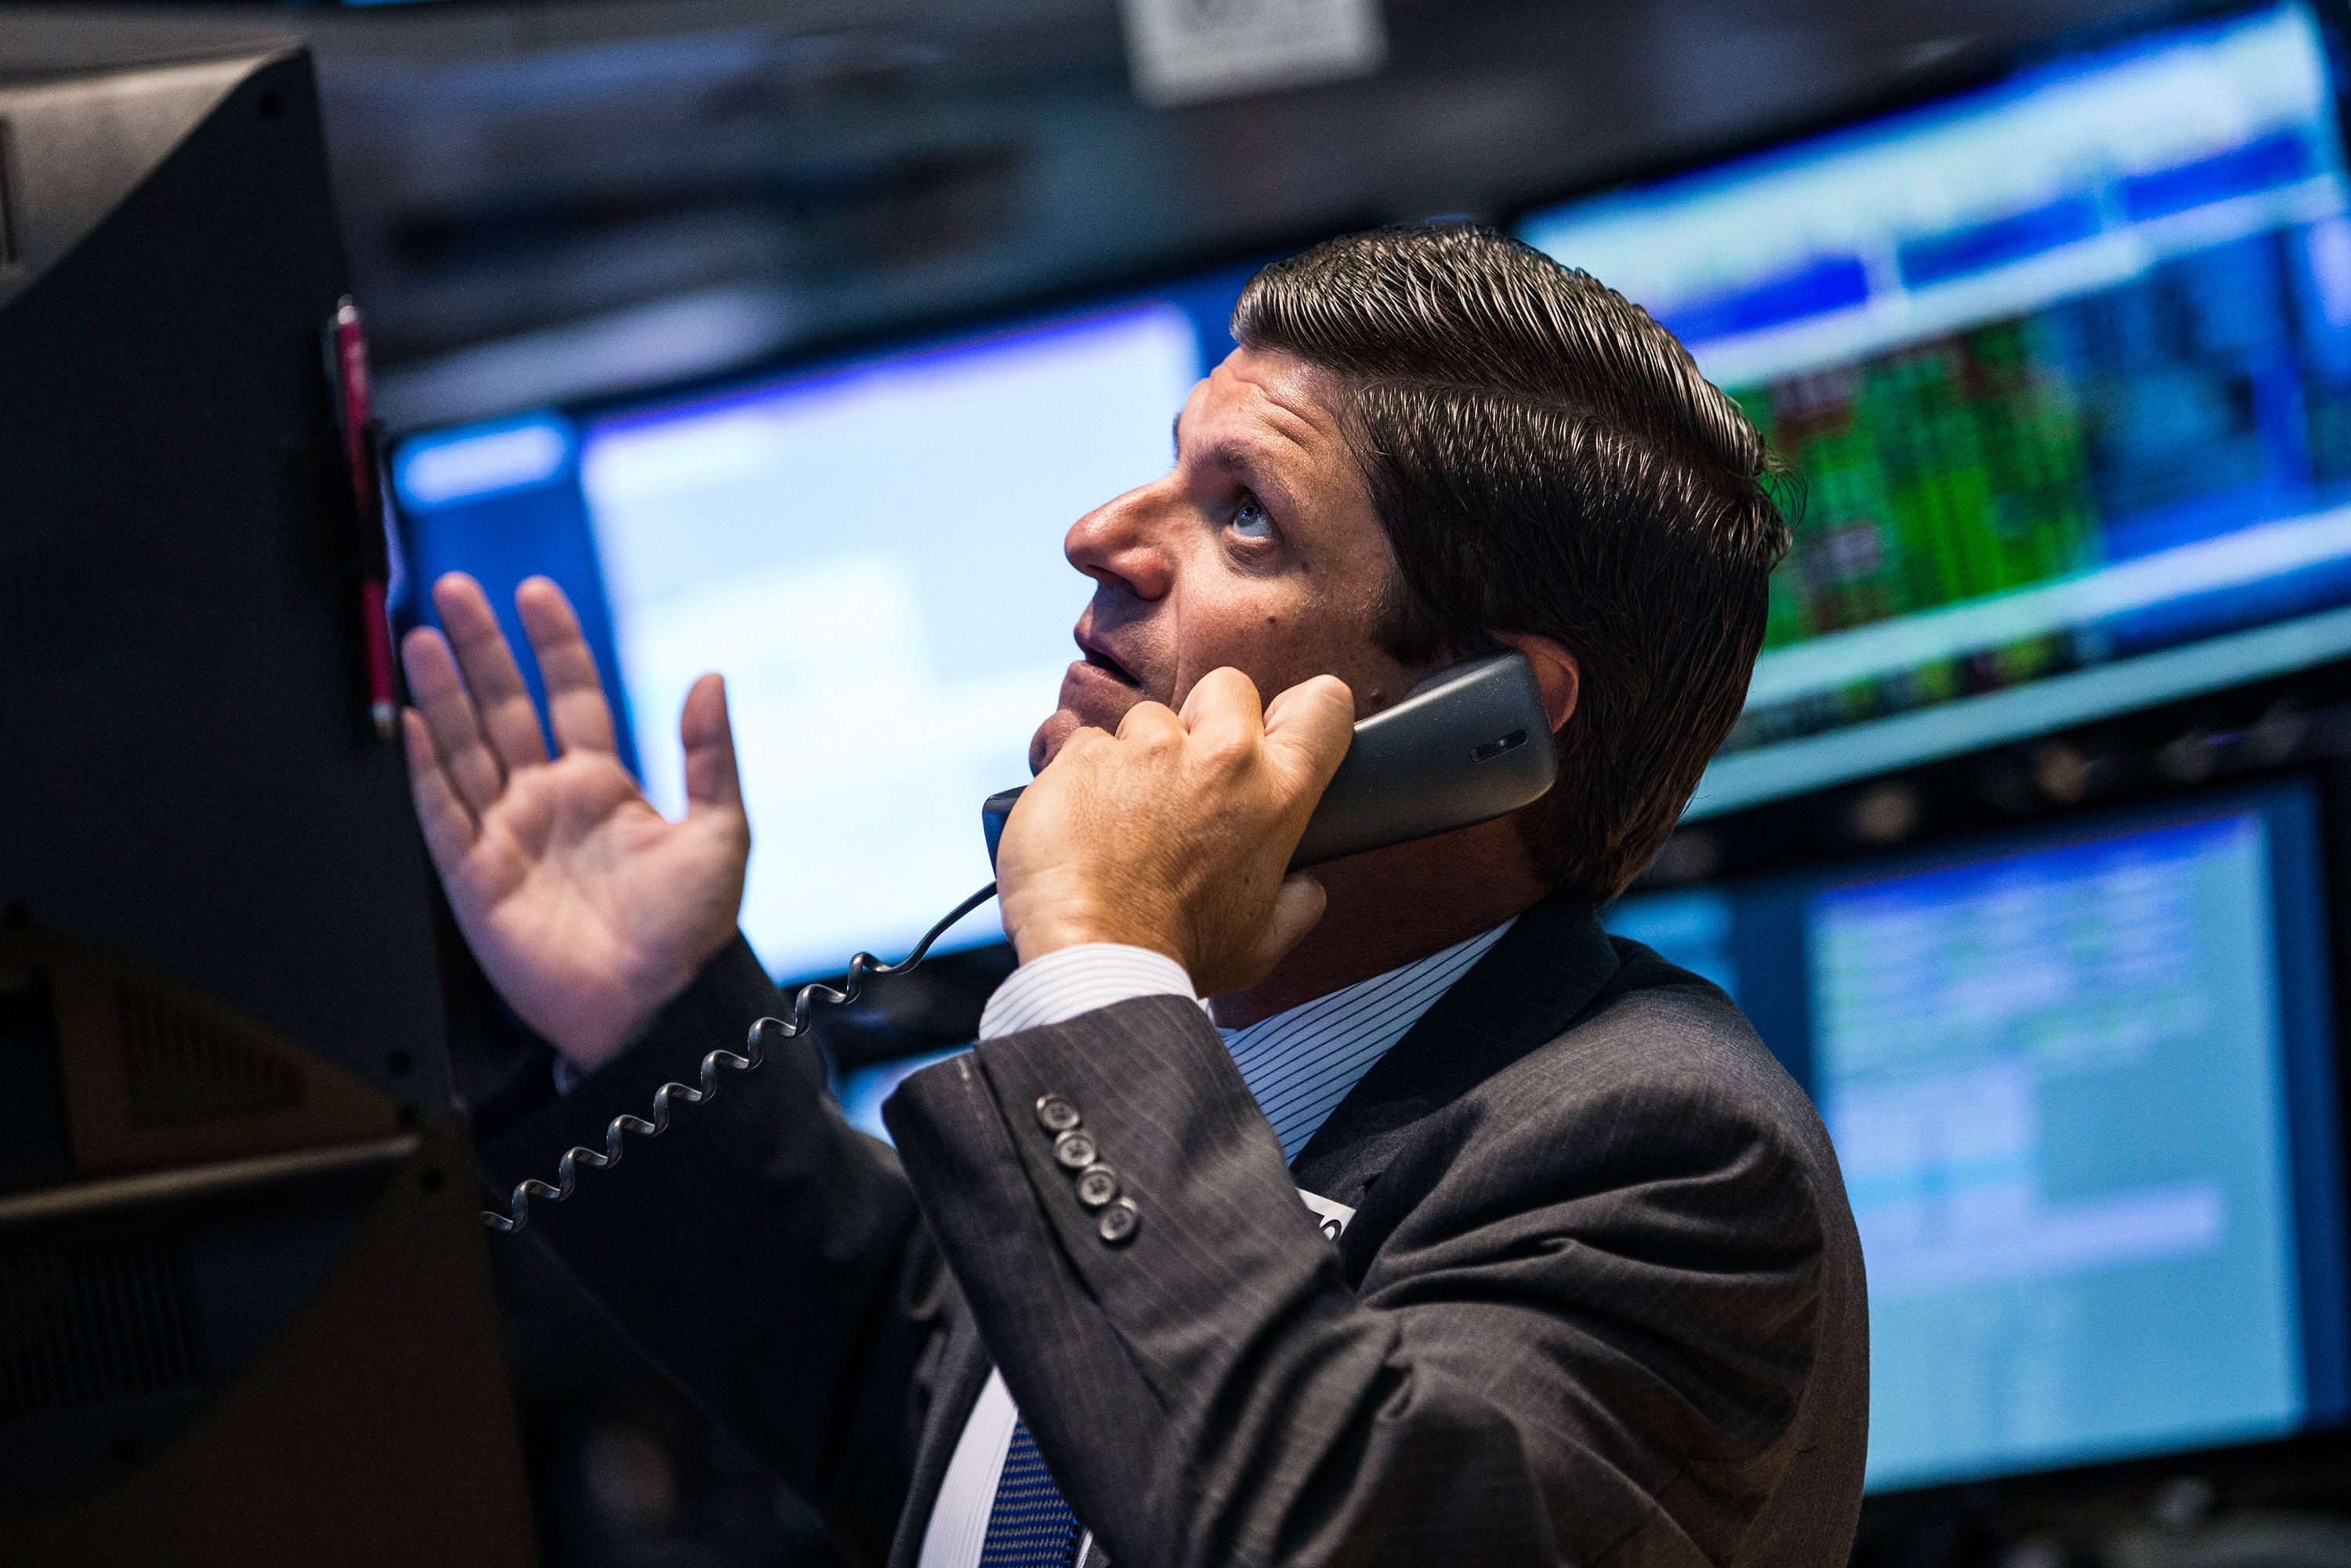 Why Market May See Risky Stock 'Melt Up' Like Late 1990s